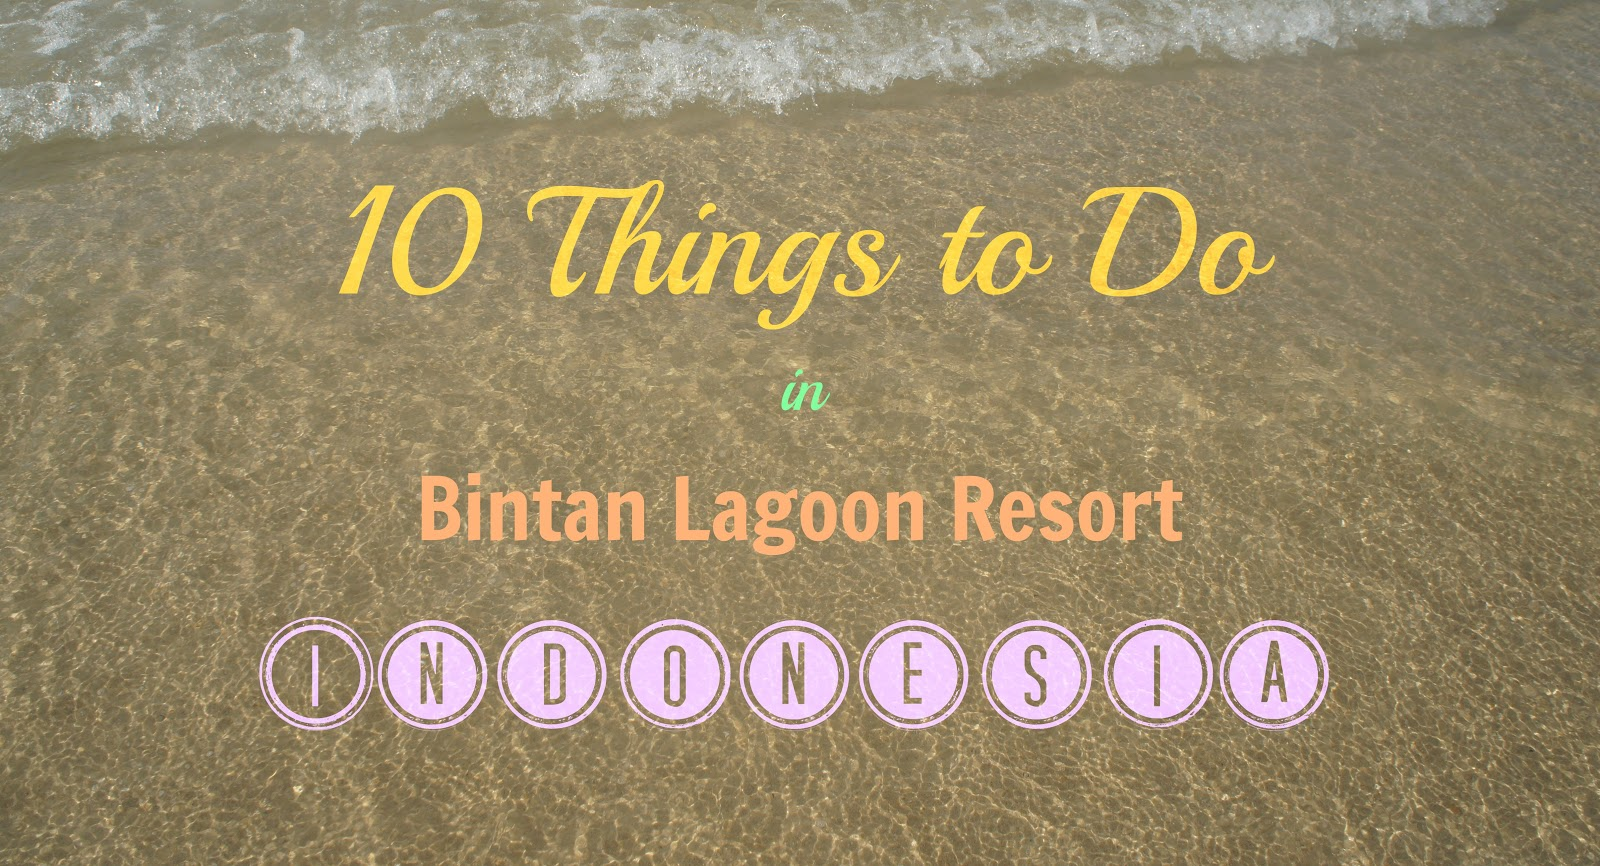 10 Things to Do in Bintan Lagoon Resort